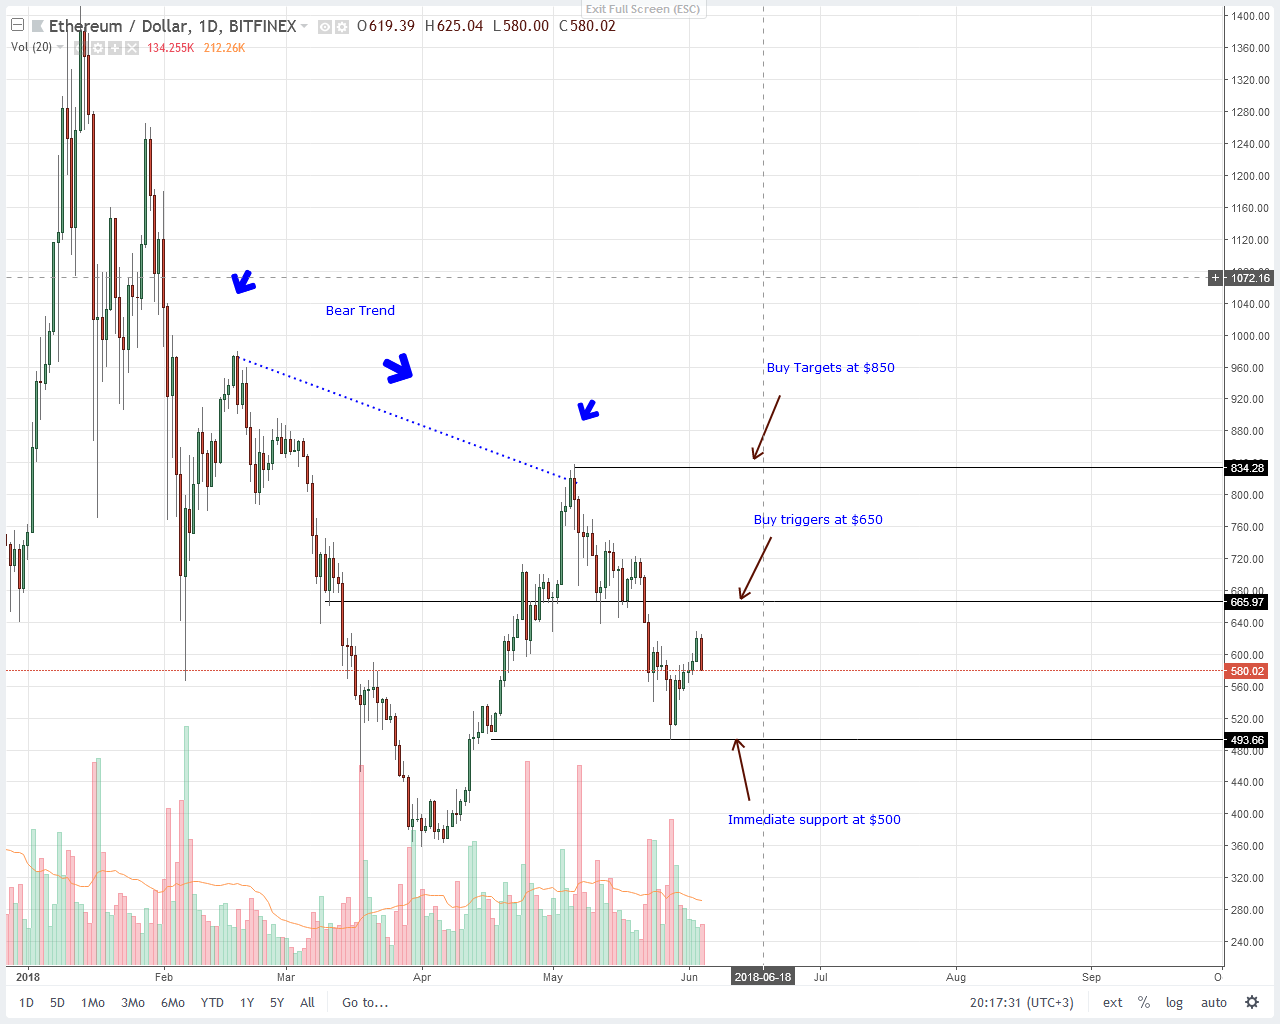 Ethereum (ETH) Price Technical Analysis